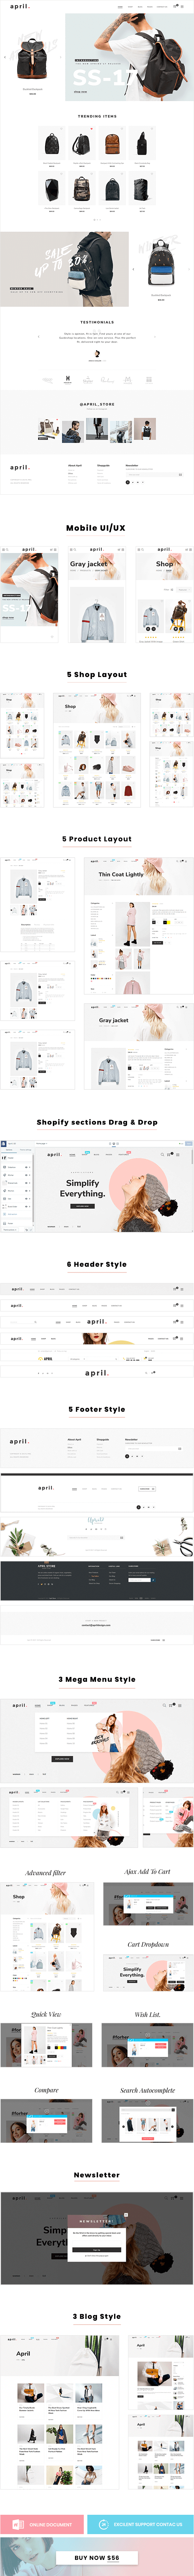 APRIL-09 - Classic theme for backpack store online